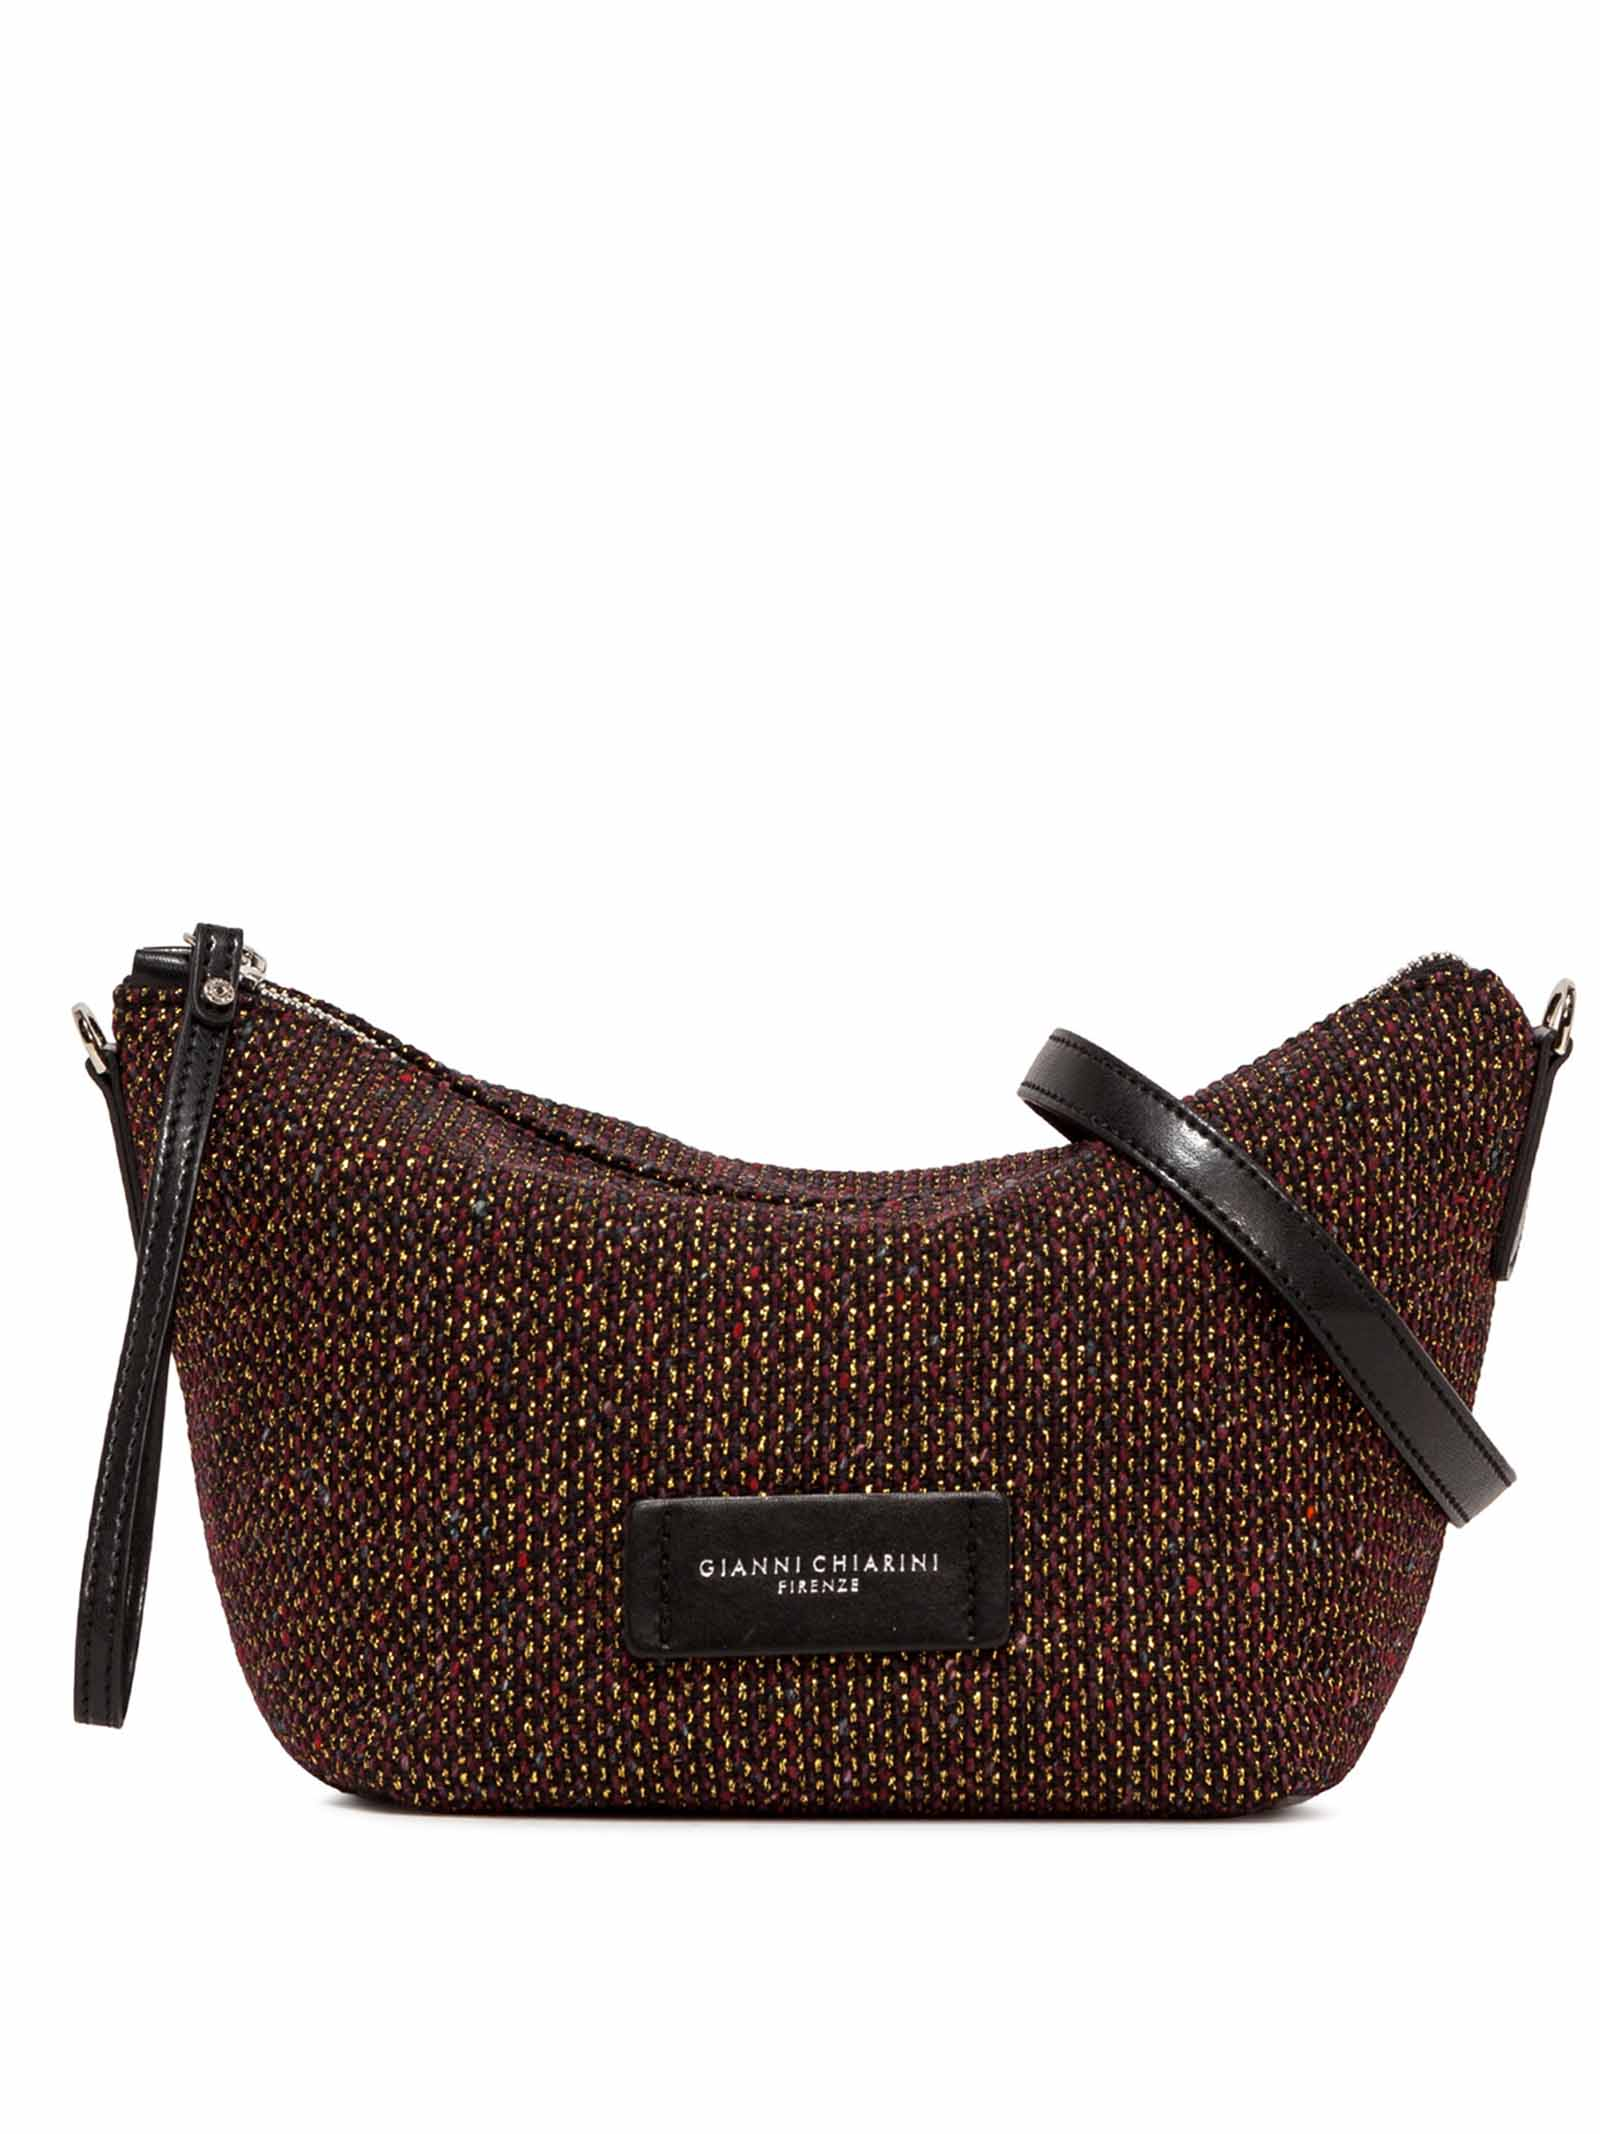 Women's Accessories Small Empty Bag in Bordeaux And Black Fabric with Leather Shoulder Strap and Bracelet Gianni Chiarini | Bags and backpacks | SB9390011